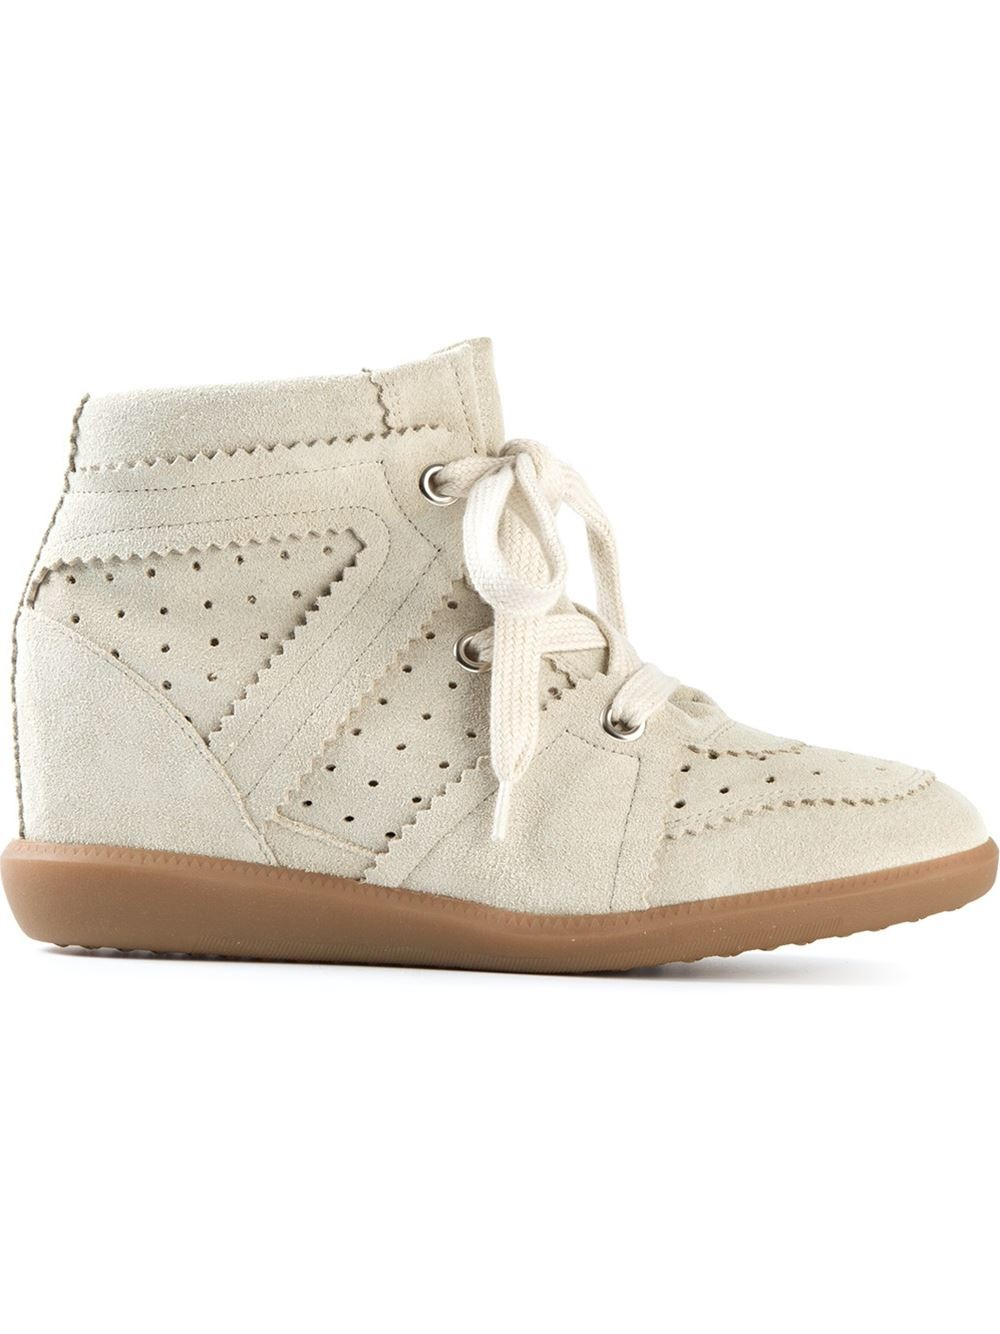 Isabel Marant Bobby Hi-Top Gray Women's Wedge Sneakers